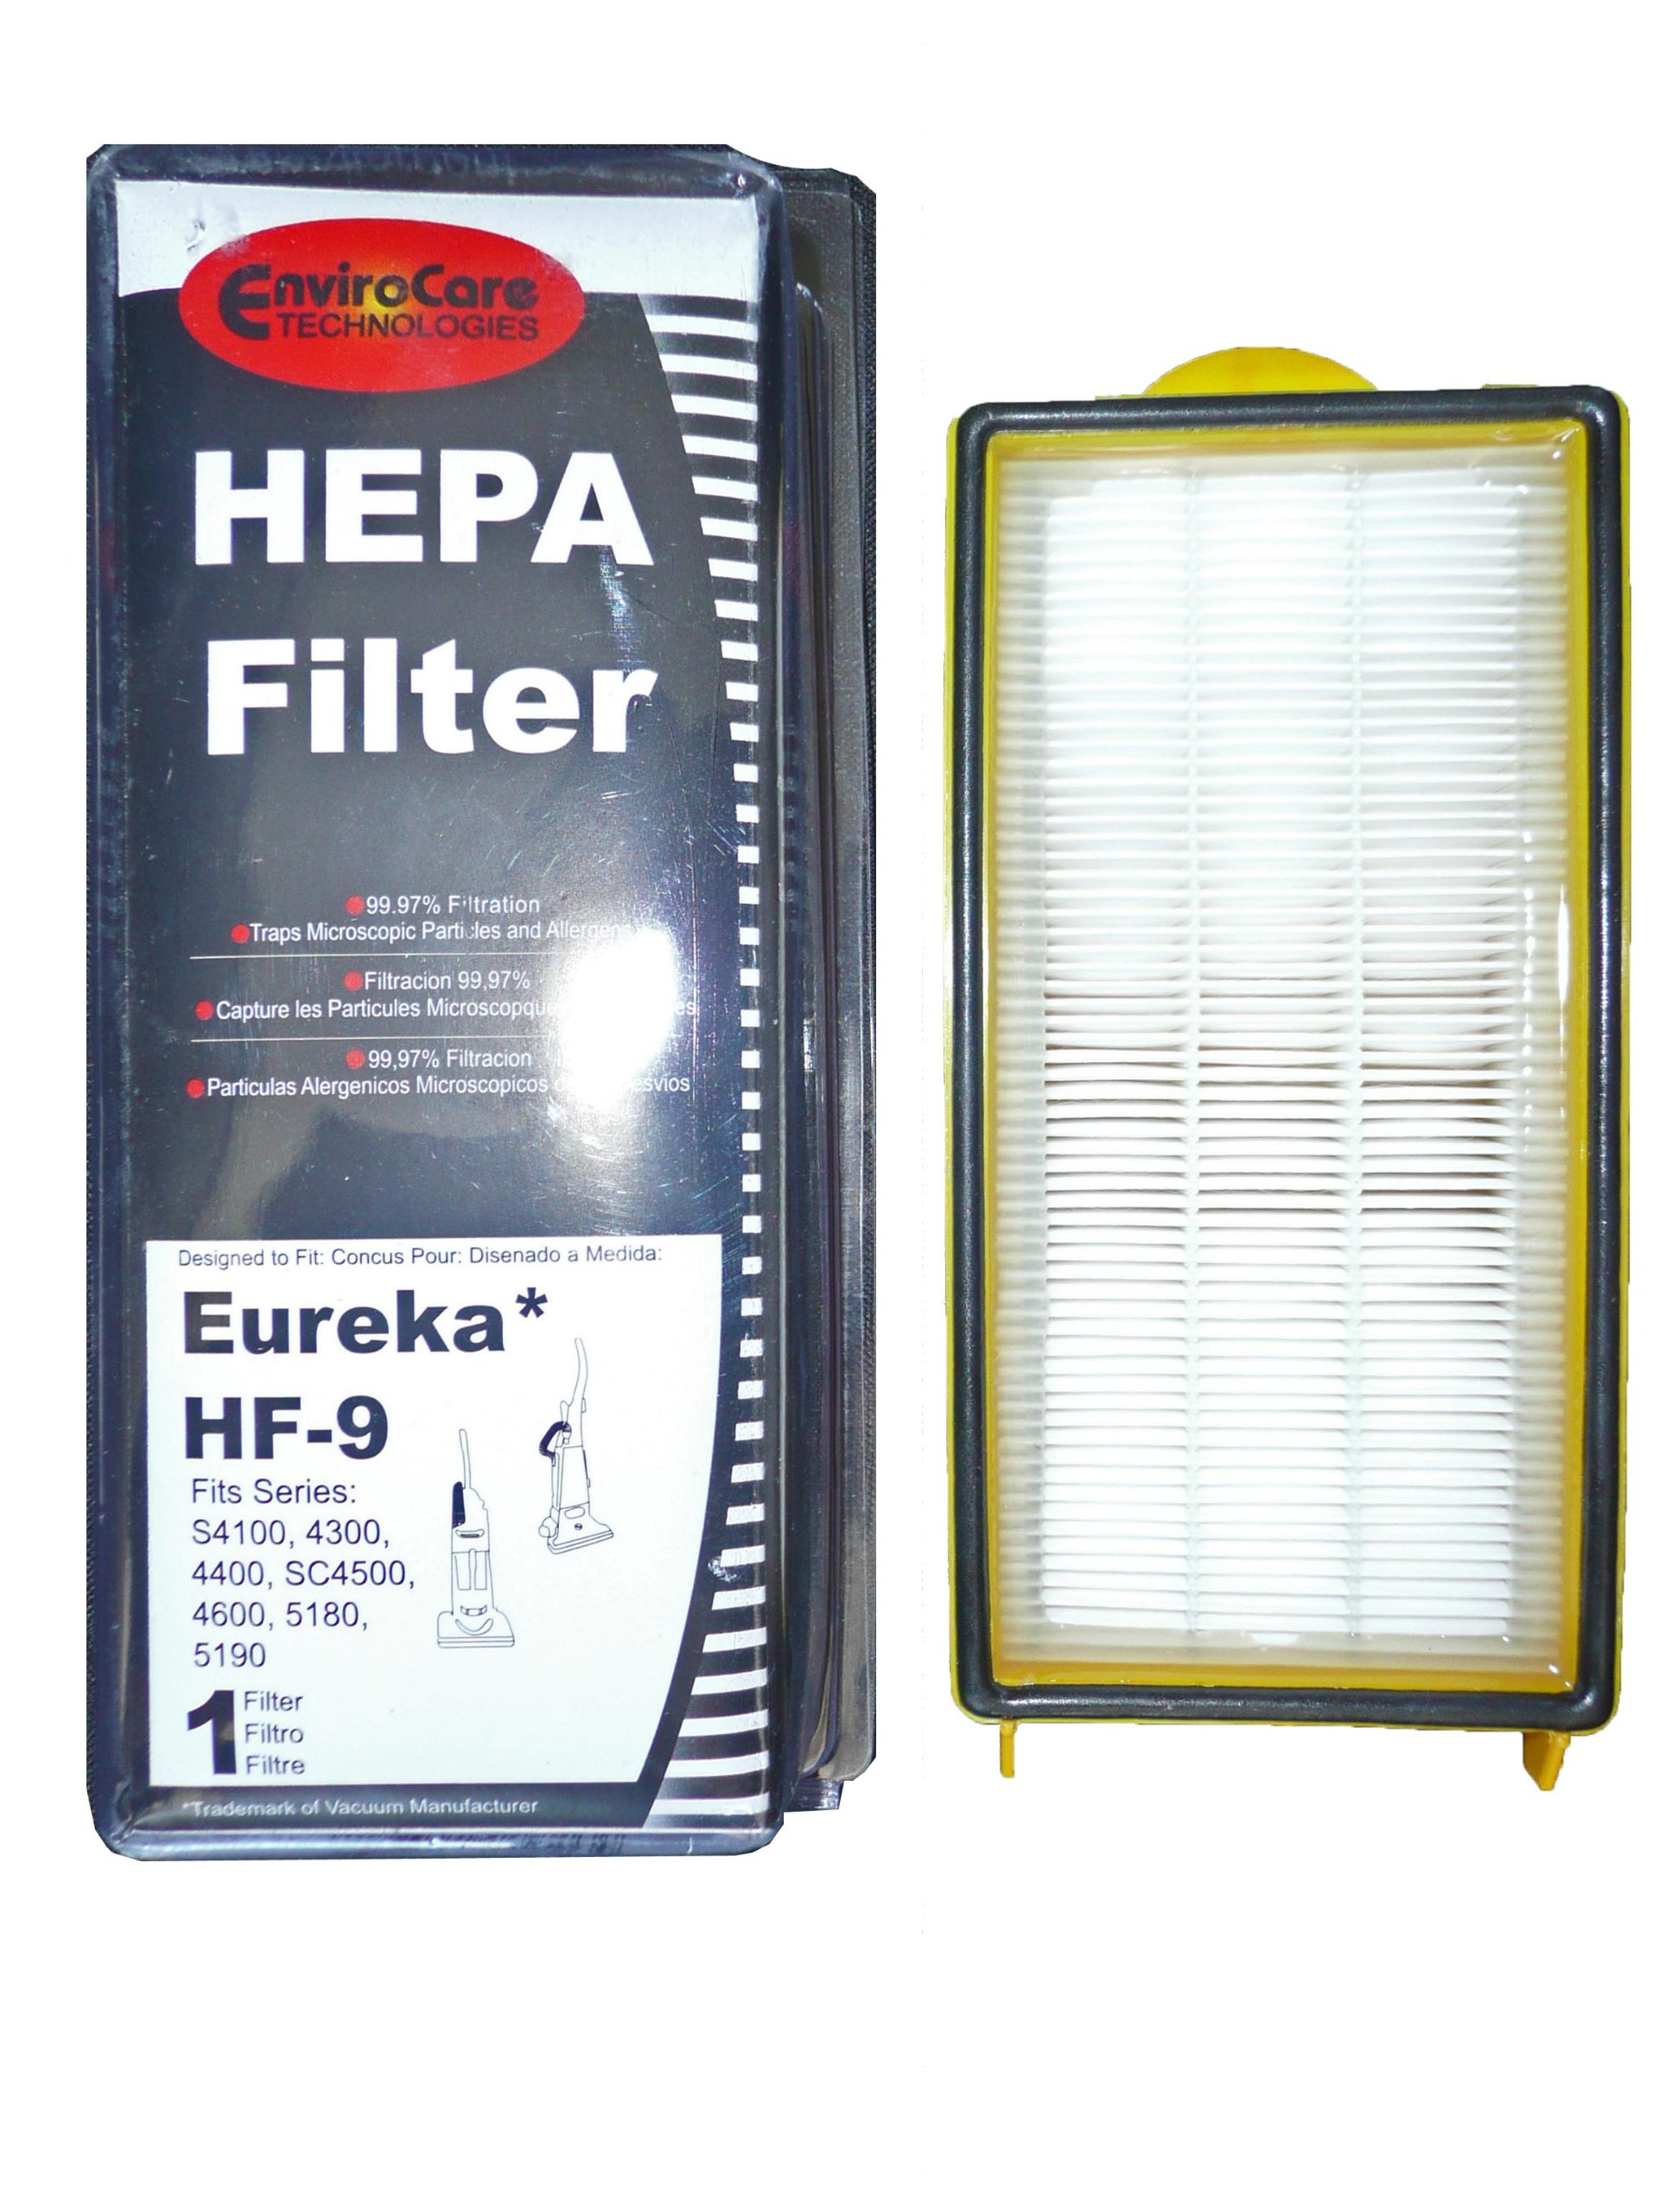 (30) 60285 Eureka HF9 Hepa Pleated Vacuum Filter, Bagless Cyclonic, Heavy Duty Upright, Self Propelled, Cleaner & Cyclonic, Limited Edition, Victory ACSA, Cleaner, Cyclonic, Hepa, Powerline Limited, Whirlwind, Boss, Smart Vac, Sanitaire Commercial Vacuum